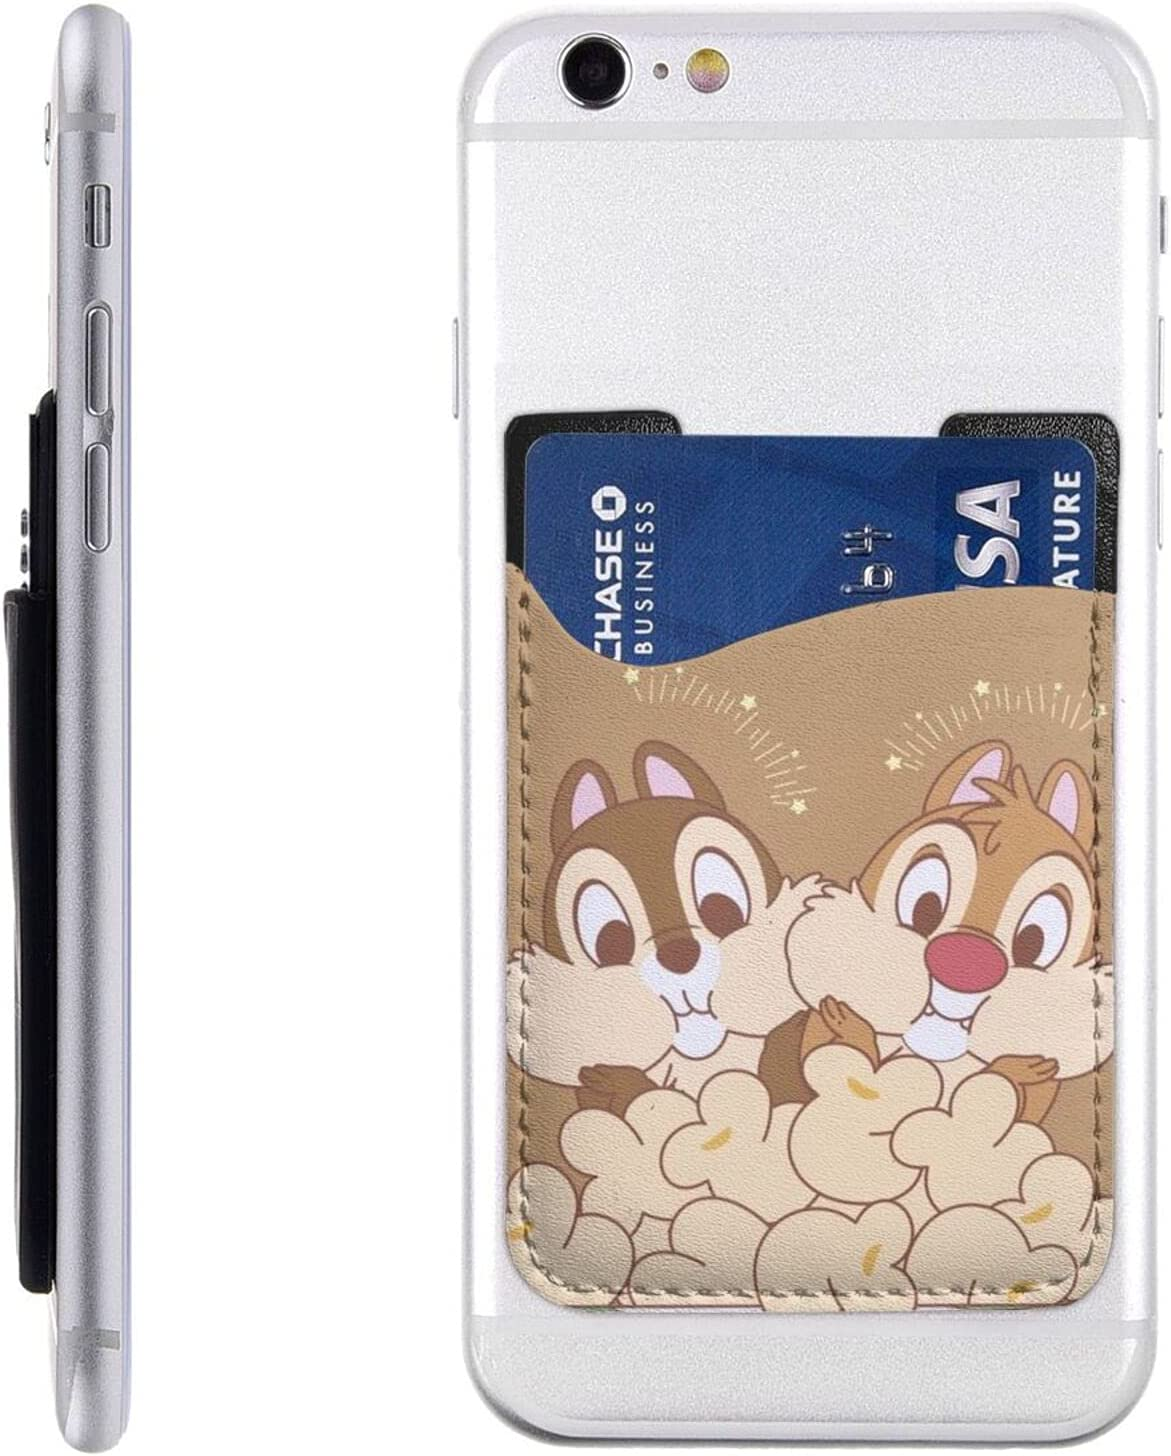 Mobile Phone Card Popular brand in the world Holder Adhesive On Austin Mall Stick Walle Cell